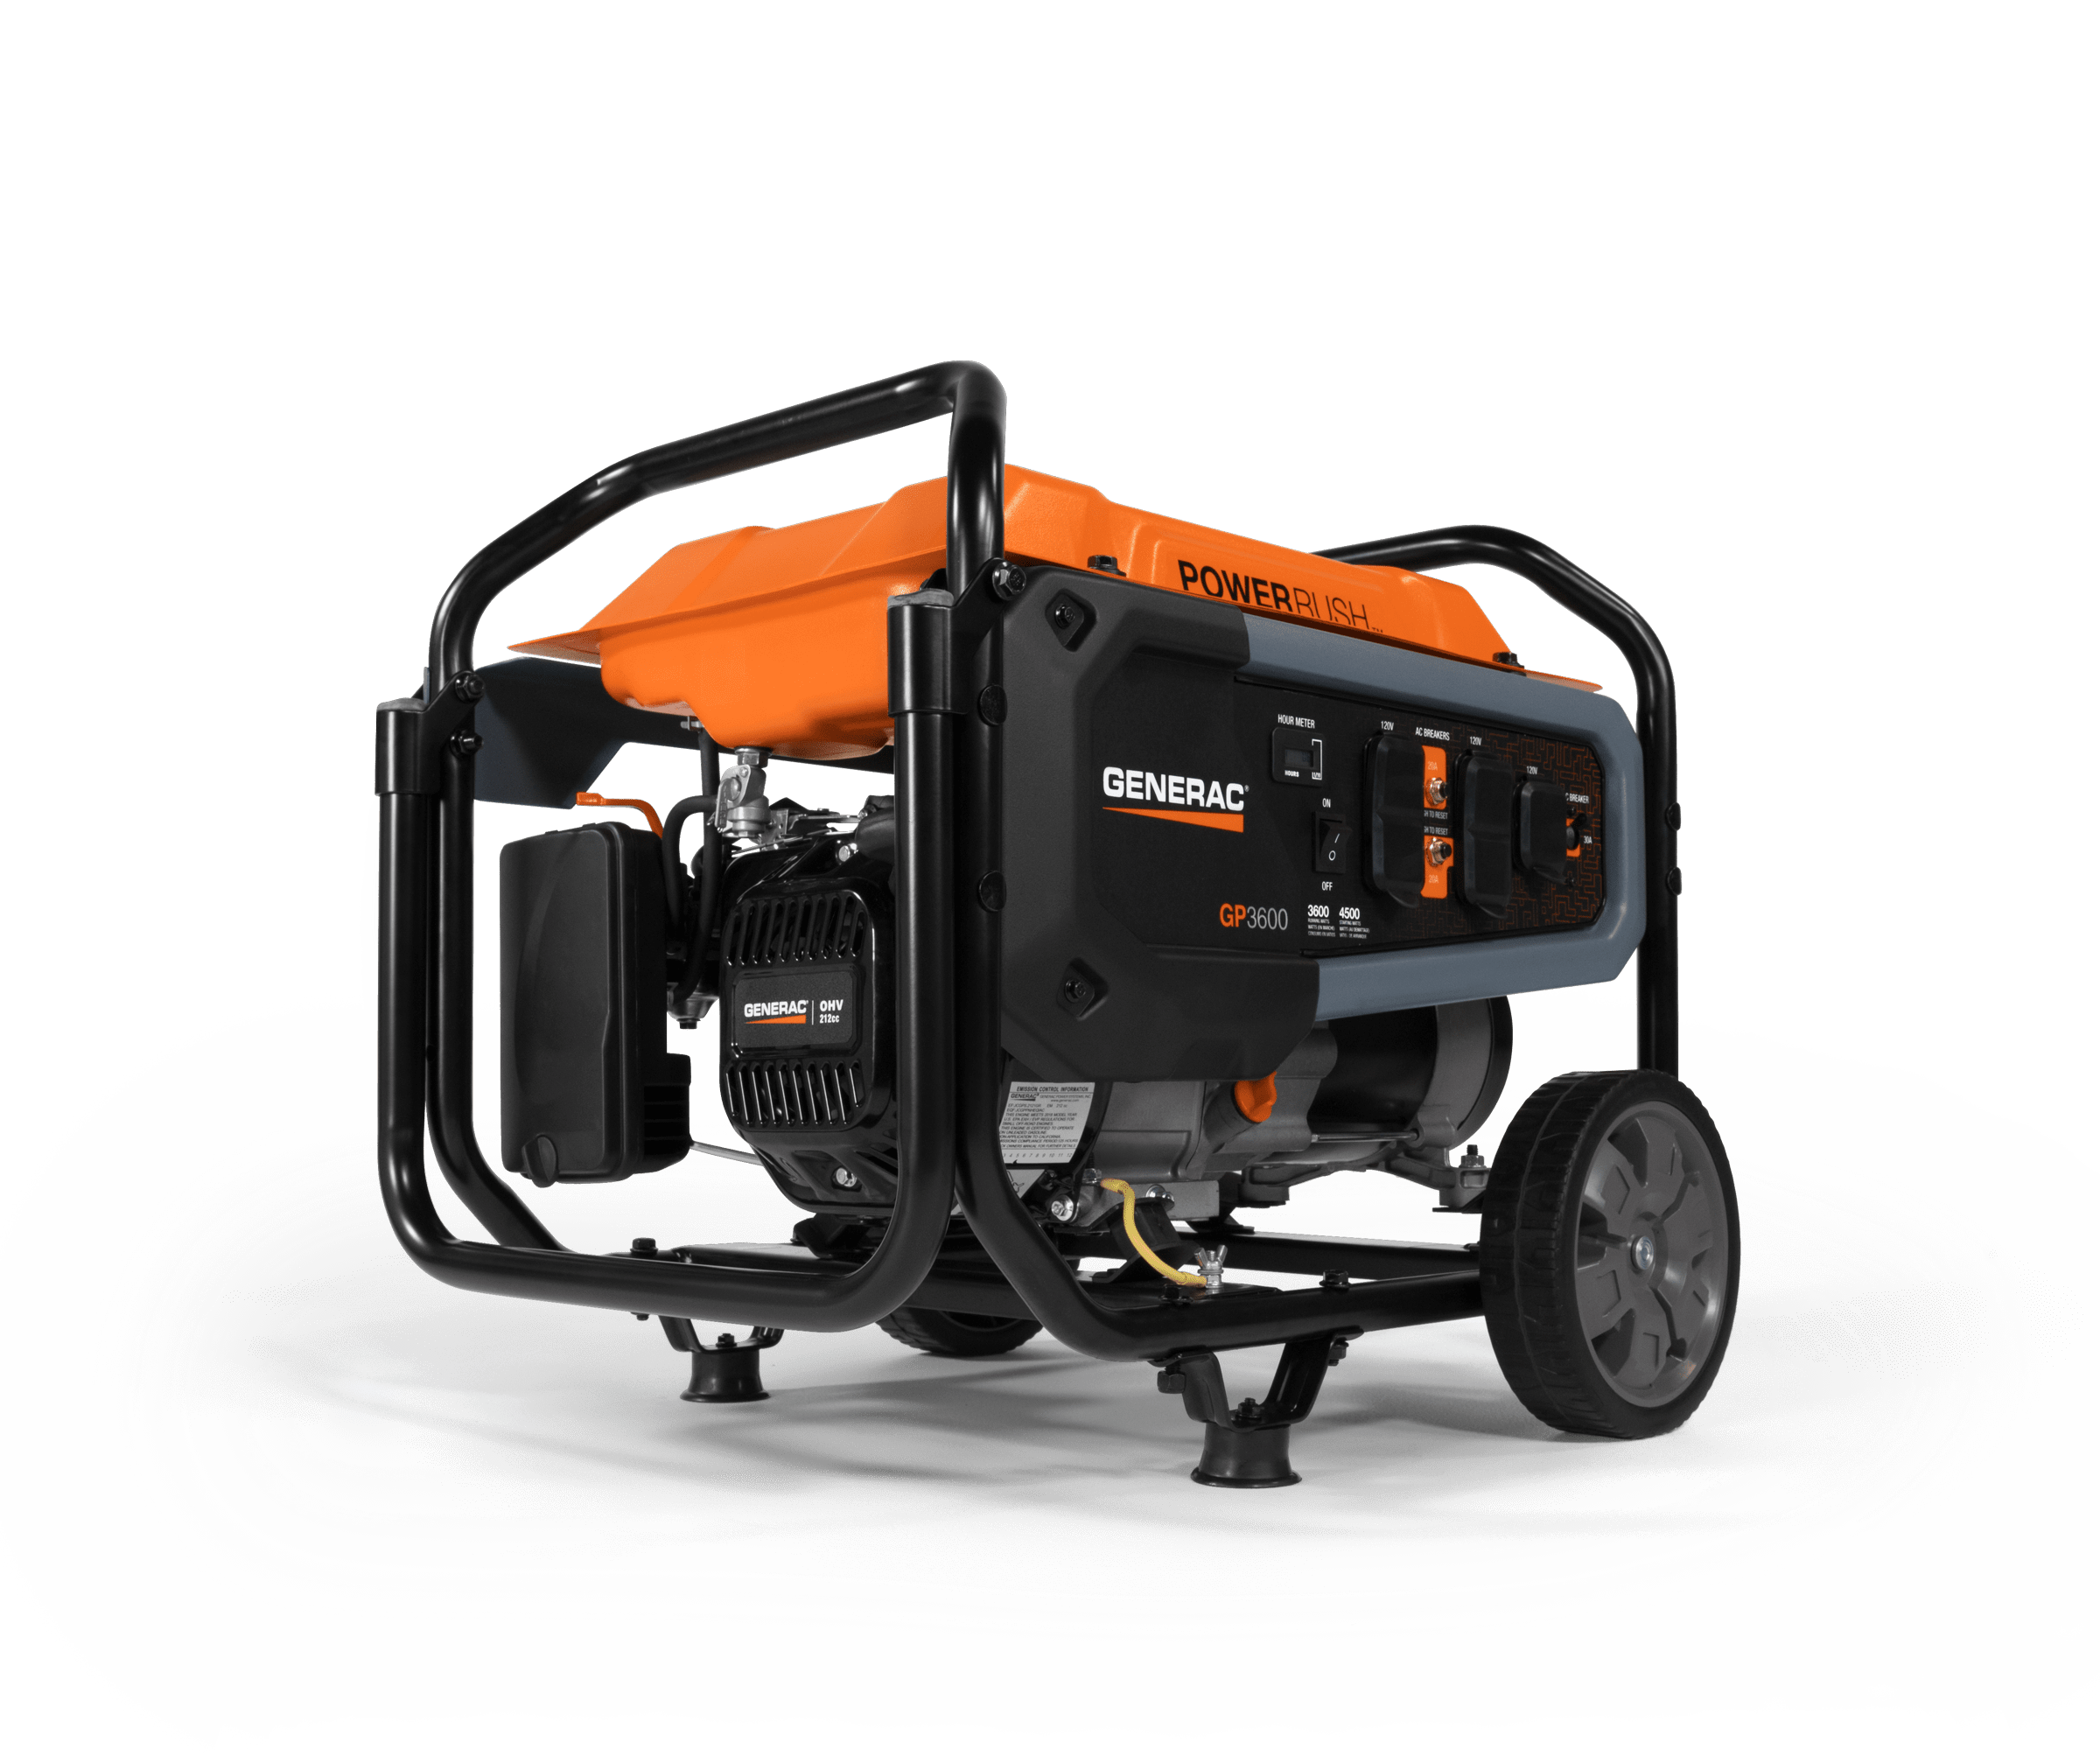 generac power systems gp series portable generators power 92961 generac portable generator 2400 watt wiring diagram [ 2400 x 2007 Pixel ]